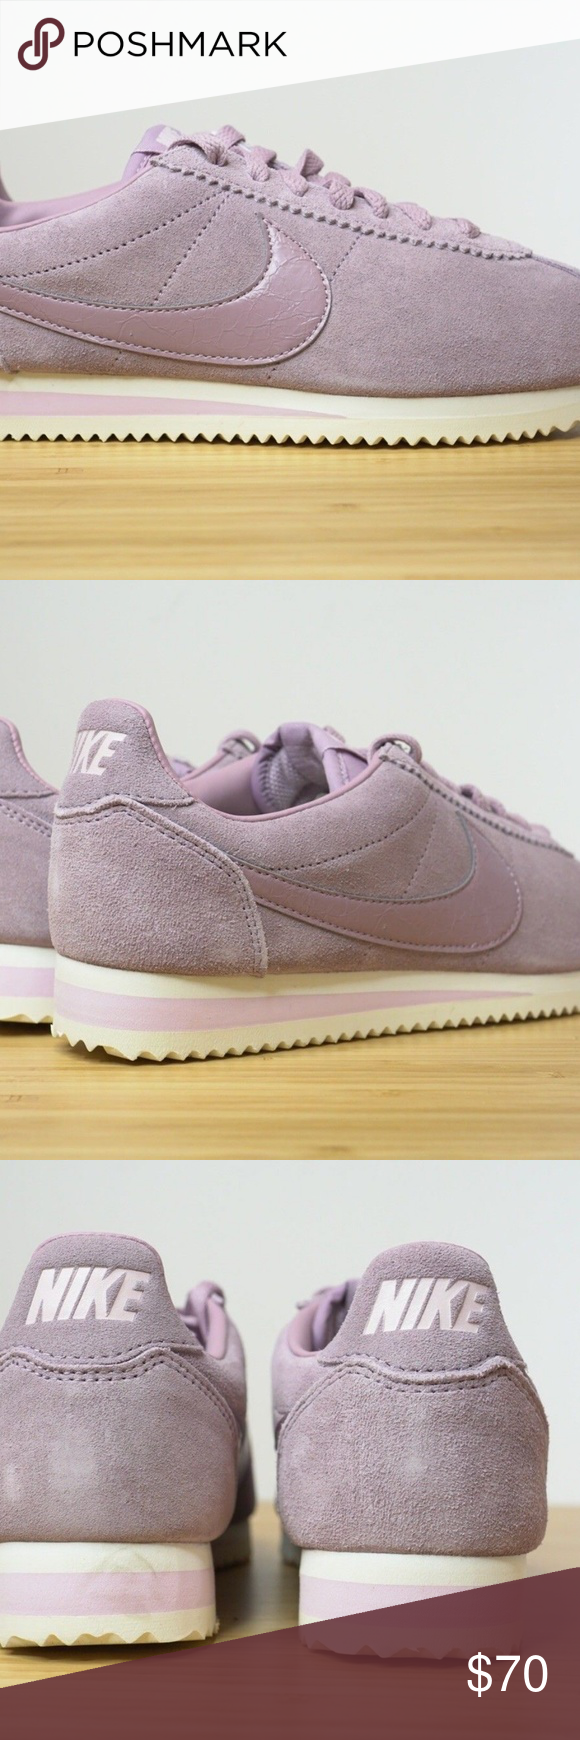 03bdbad6b4e7c Nike Classic Cortez Suede Womens Shoes AA3839-600 CONDITION  Brand New with  Box